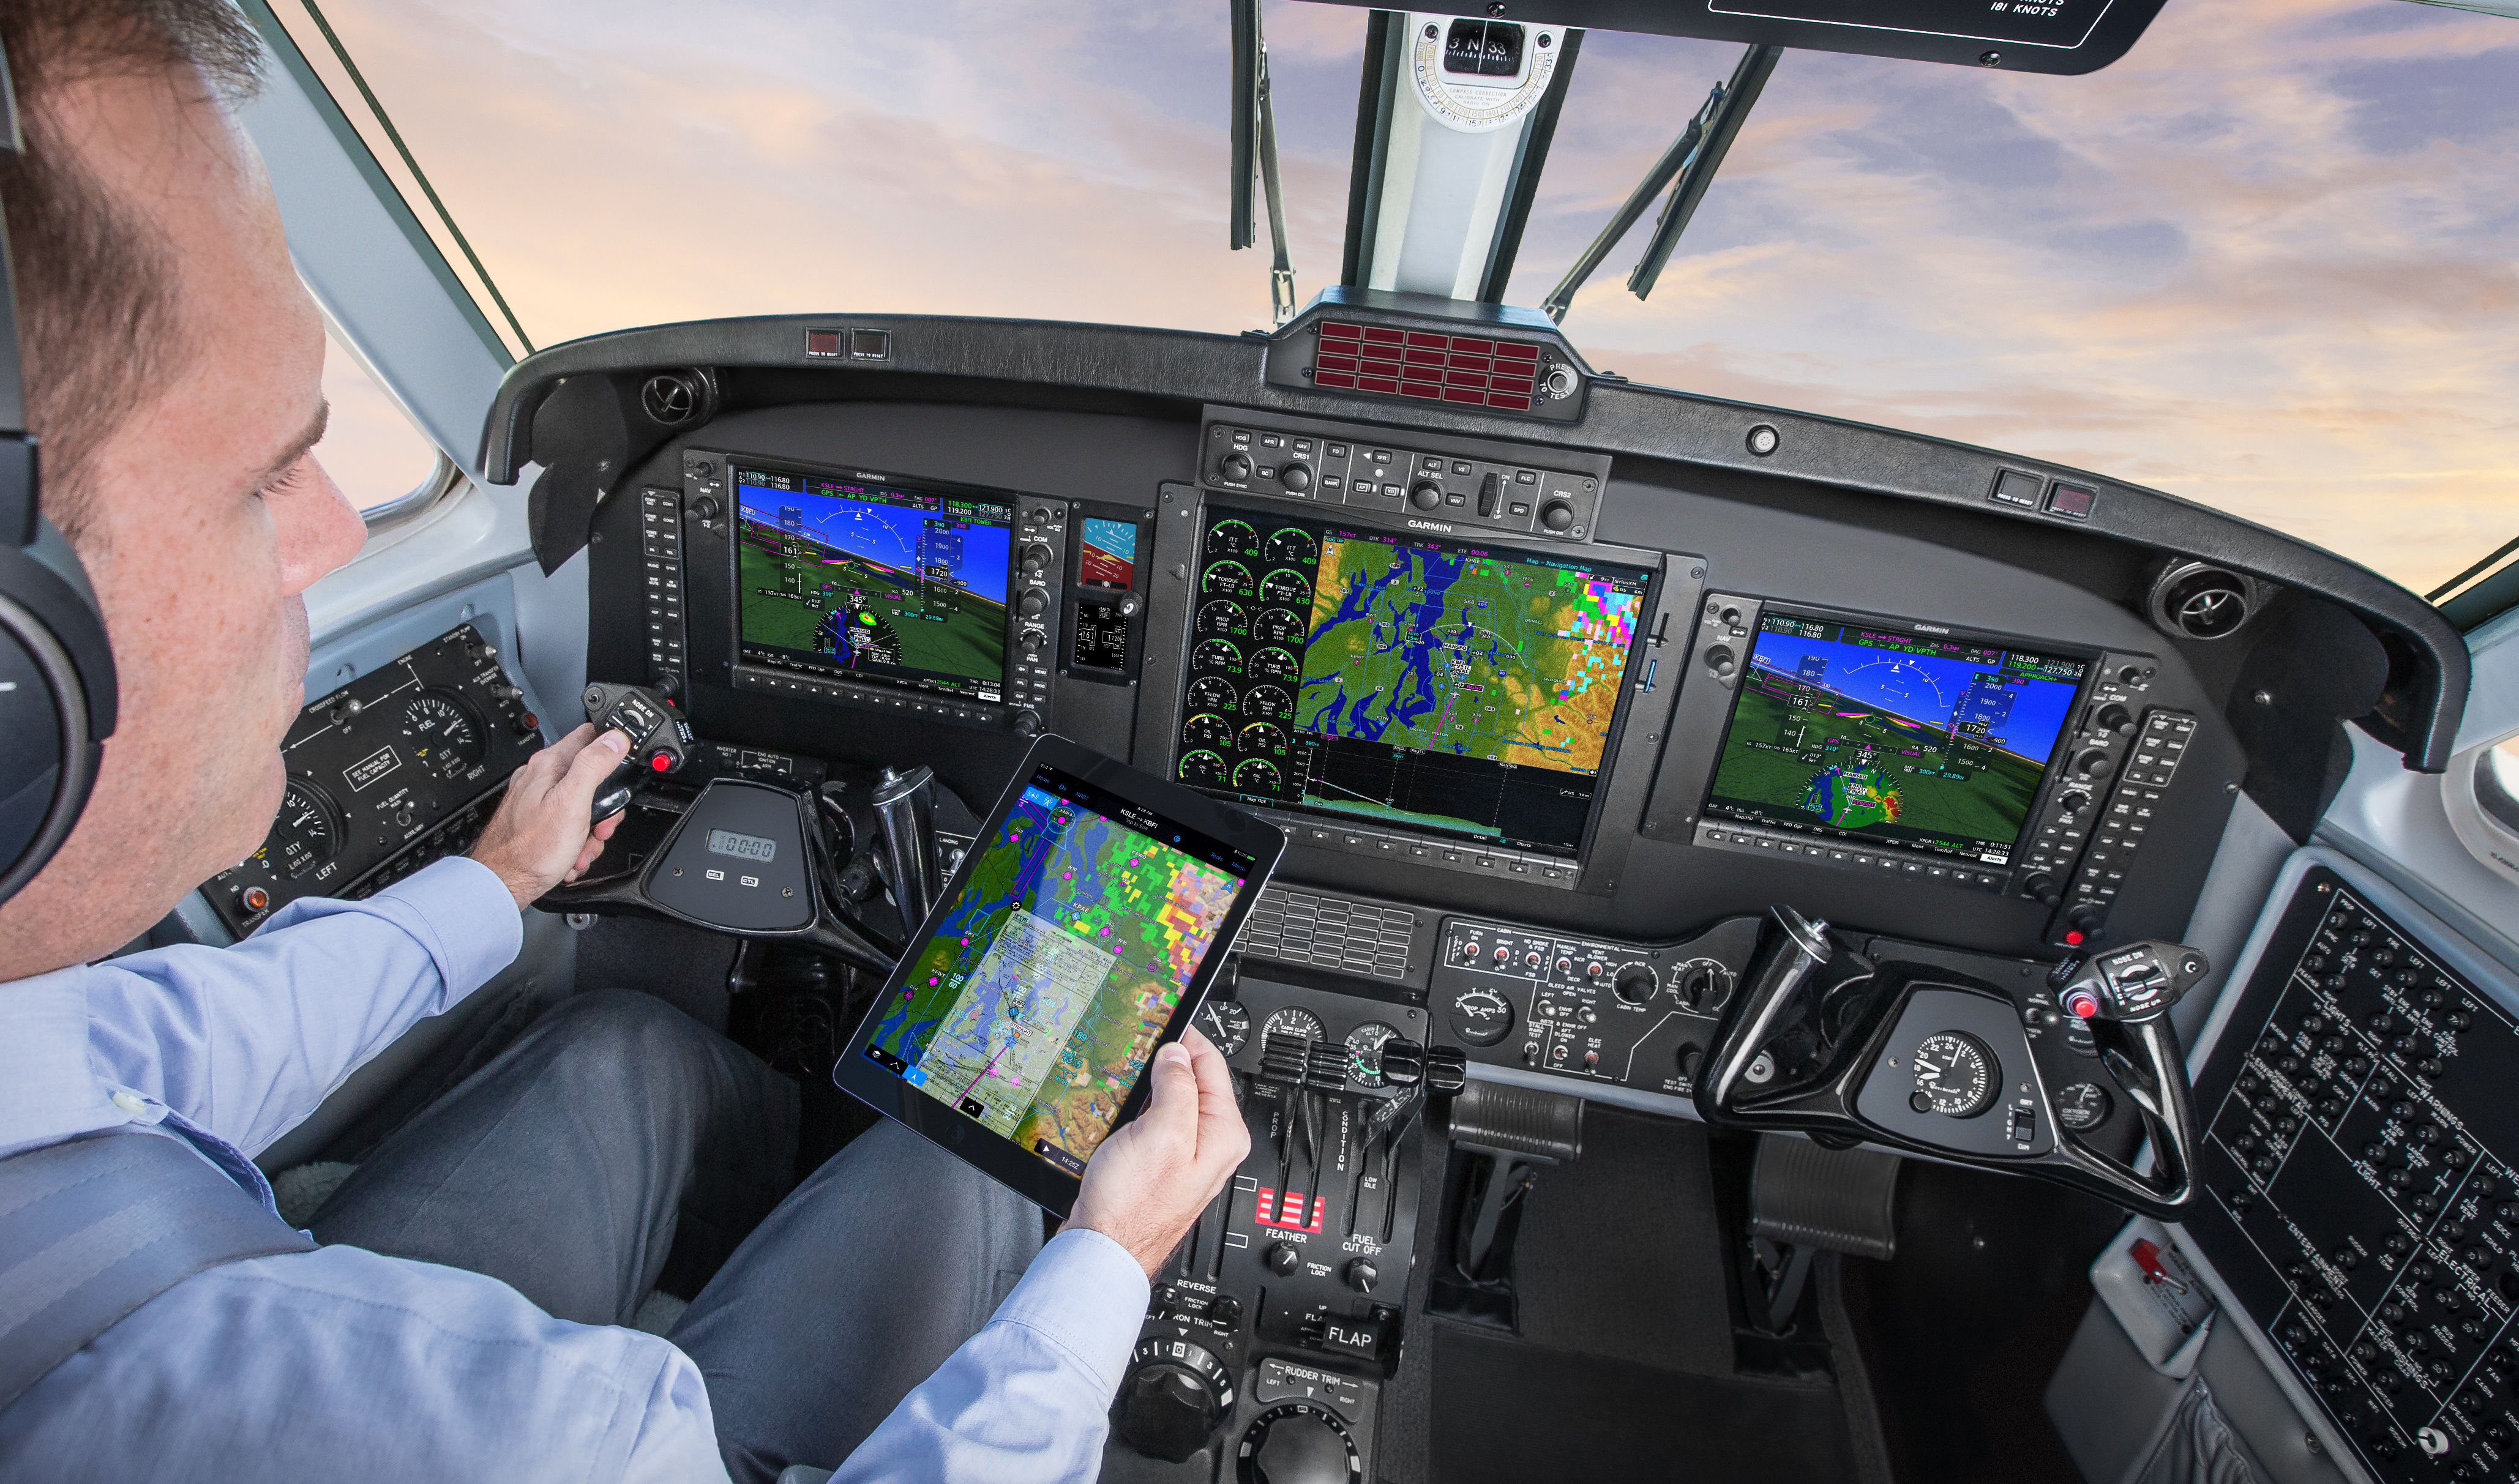 Man sits in cockpit of aircraft